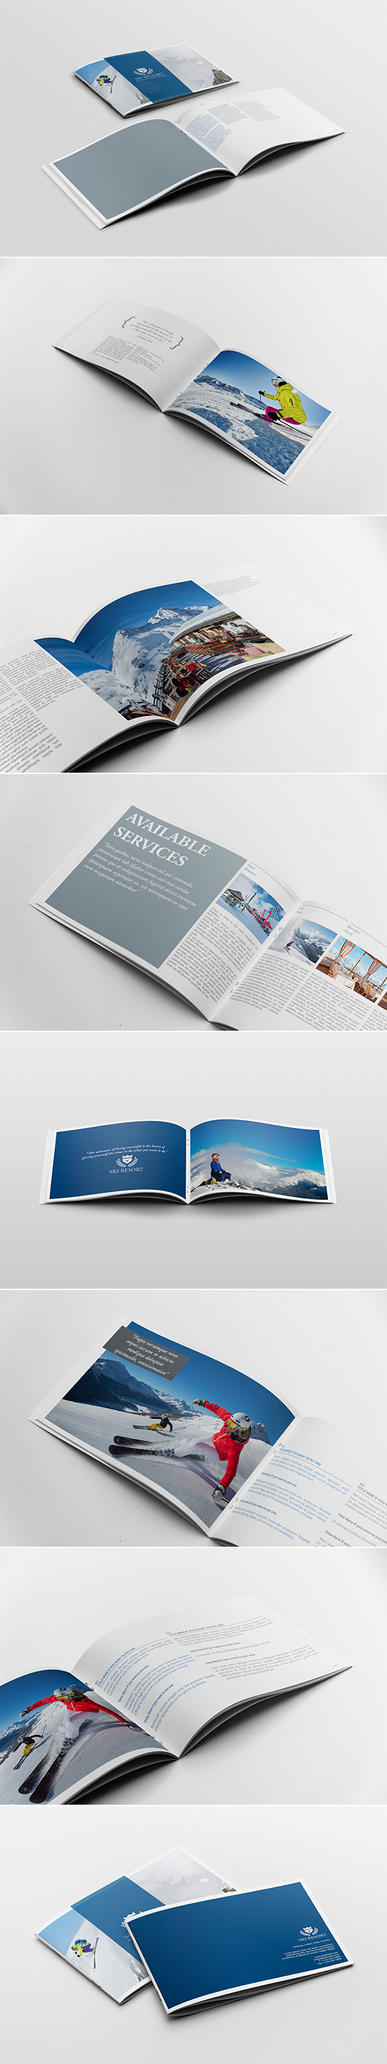 Travel Brochure / Guide Template by andre2886